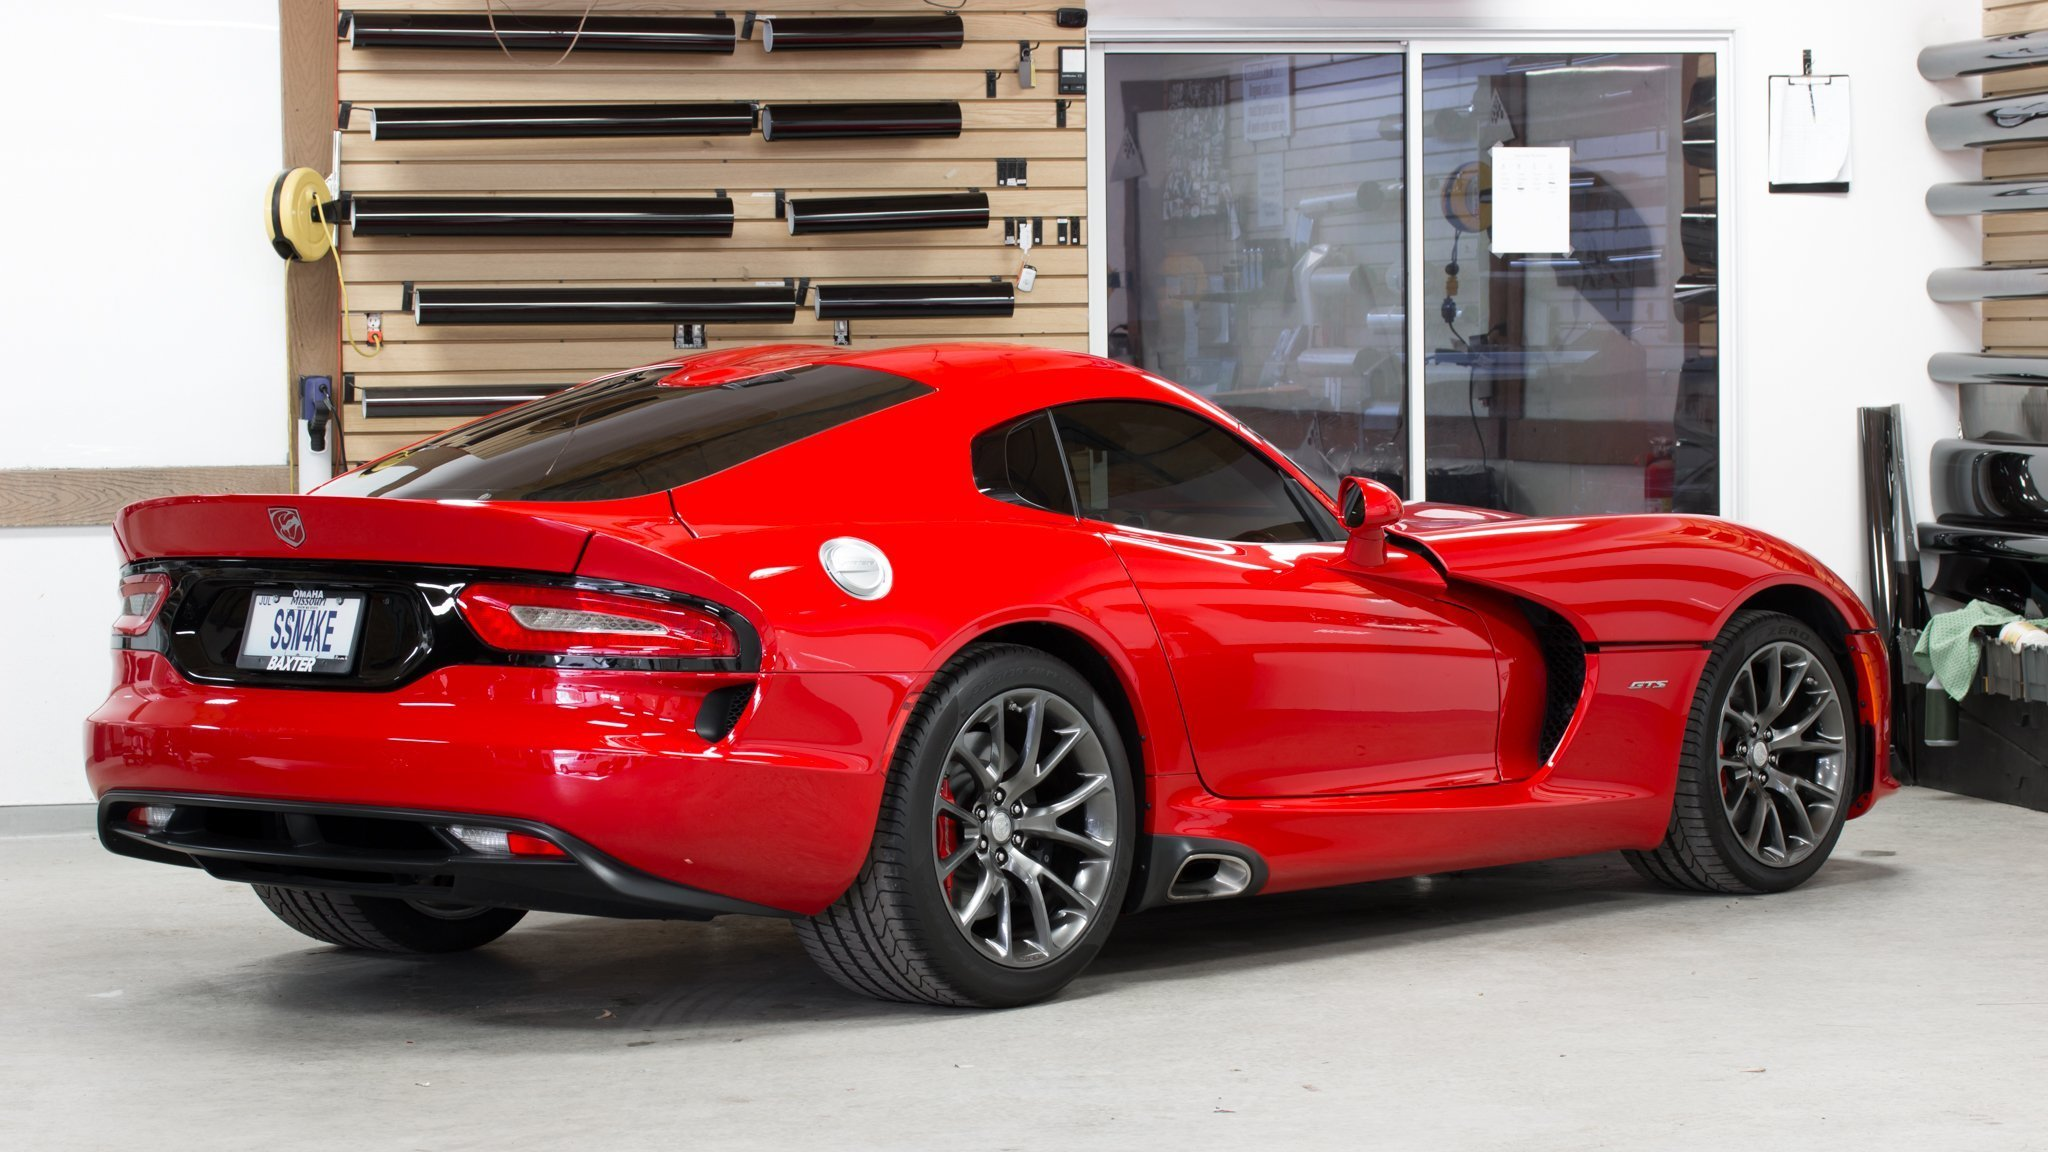 Quality window tint for a Dodge Viper